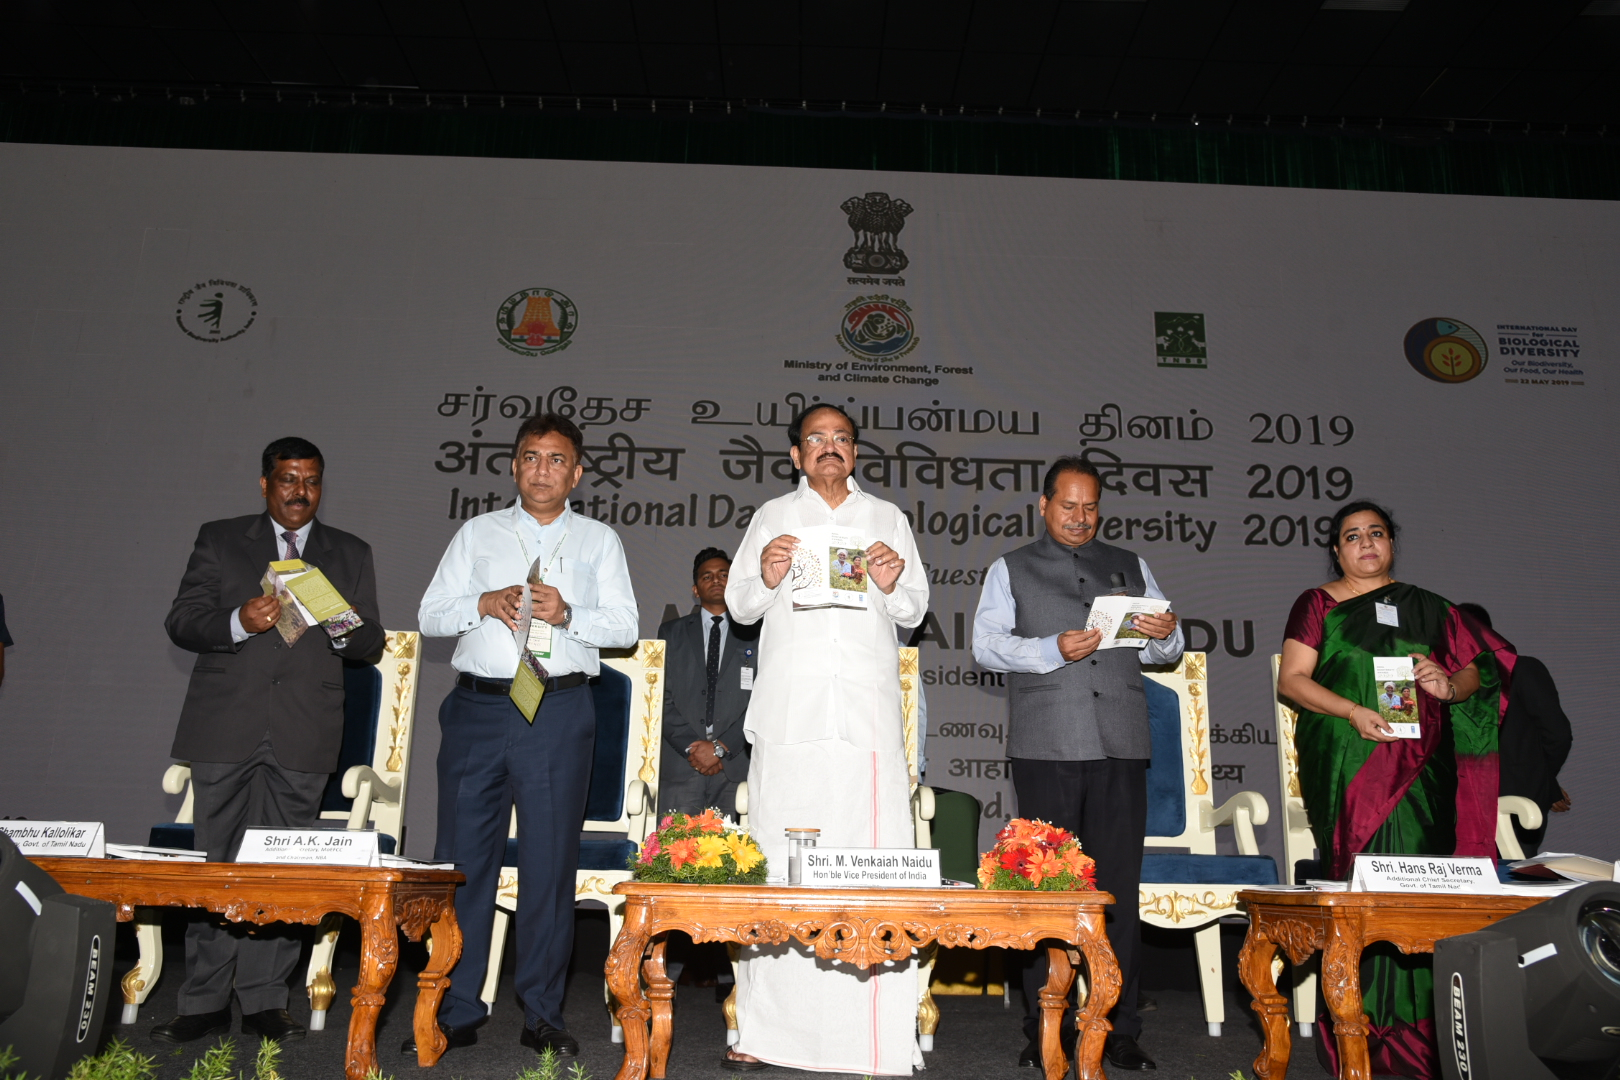 The Vice President, Shri M. Venkaiah Naidu releasing the souvenir at the International Day for Biological Diversity 2019, in Chennai on May 22, 2019.